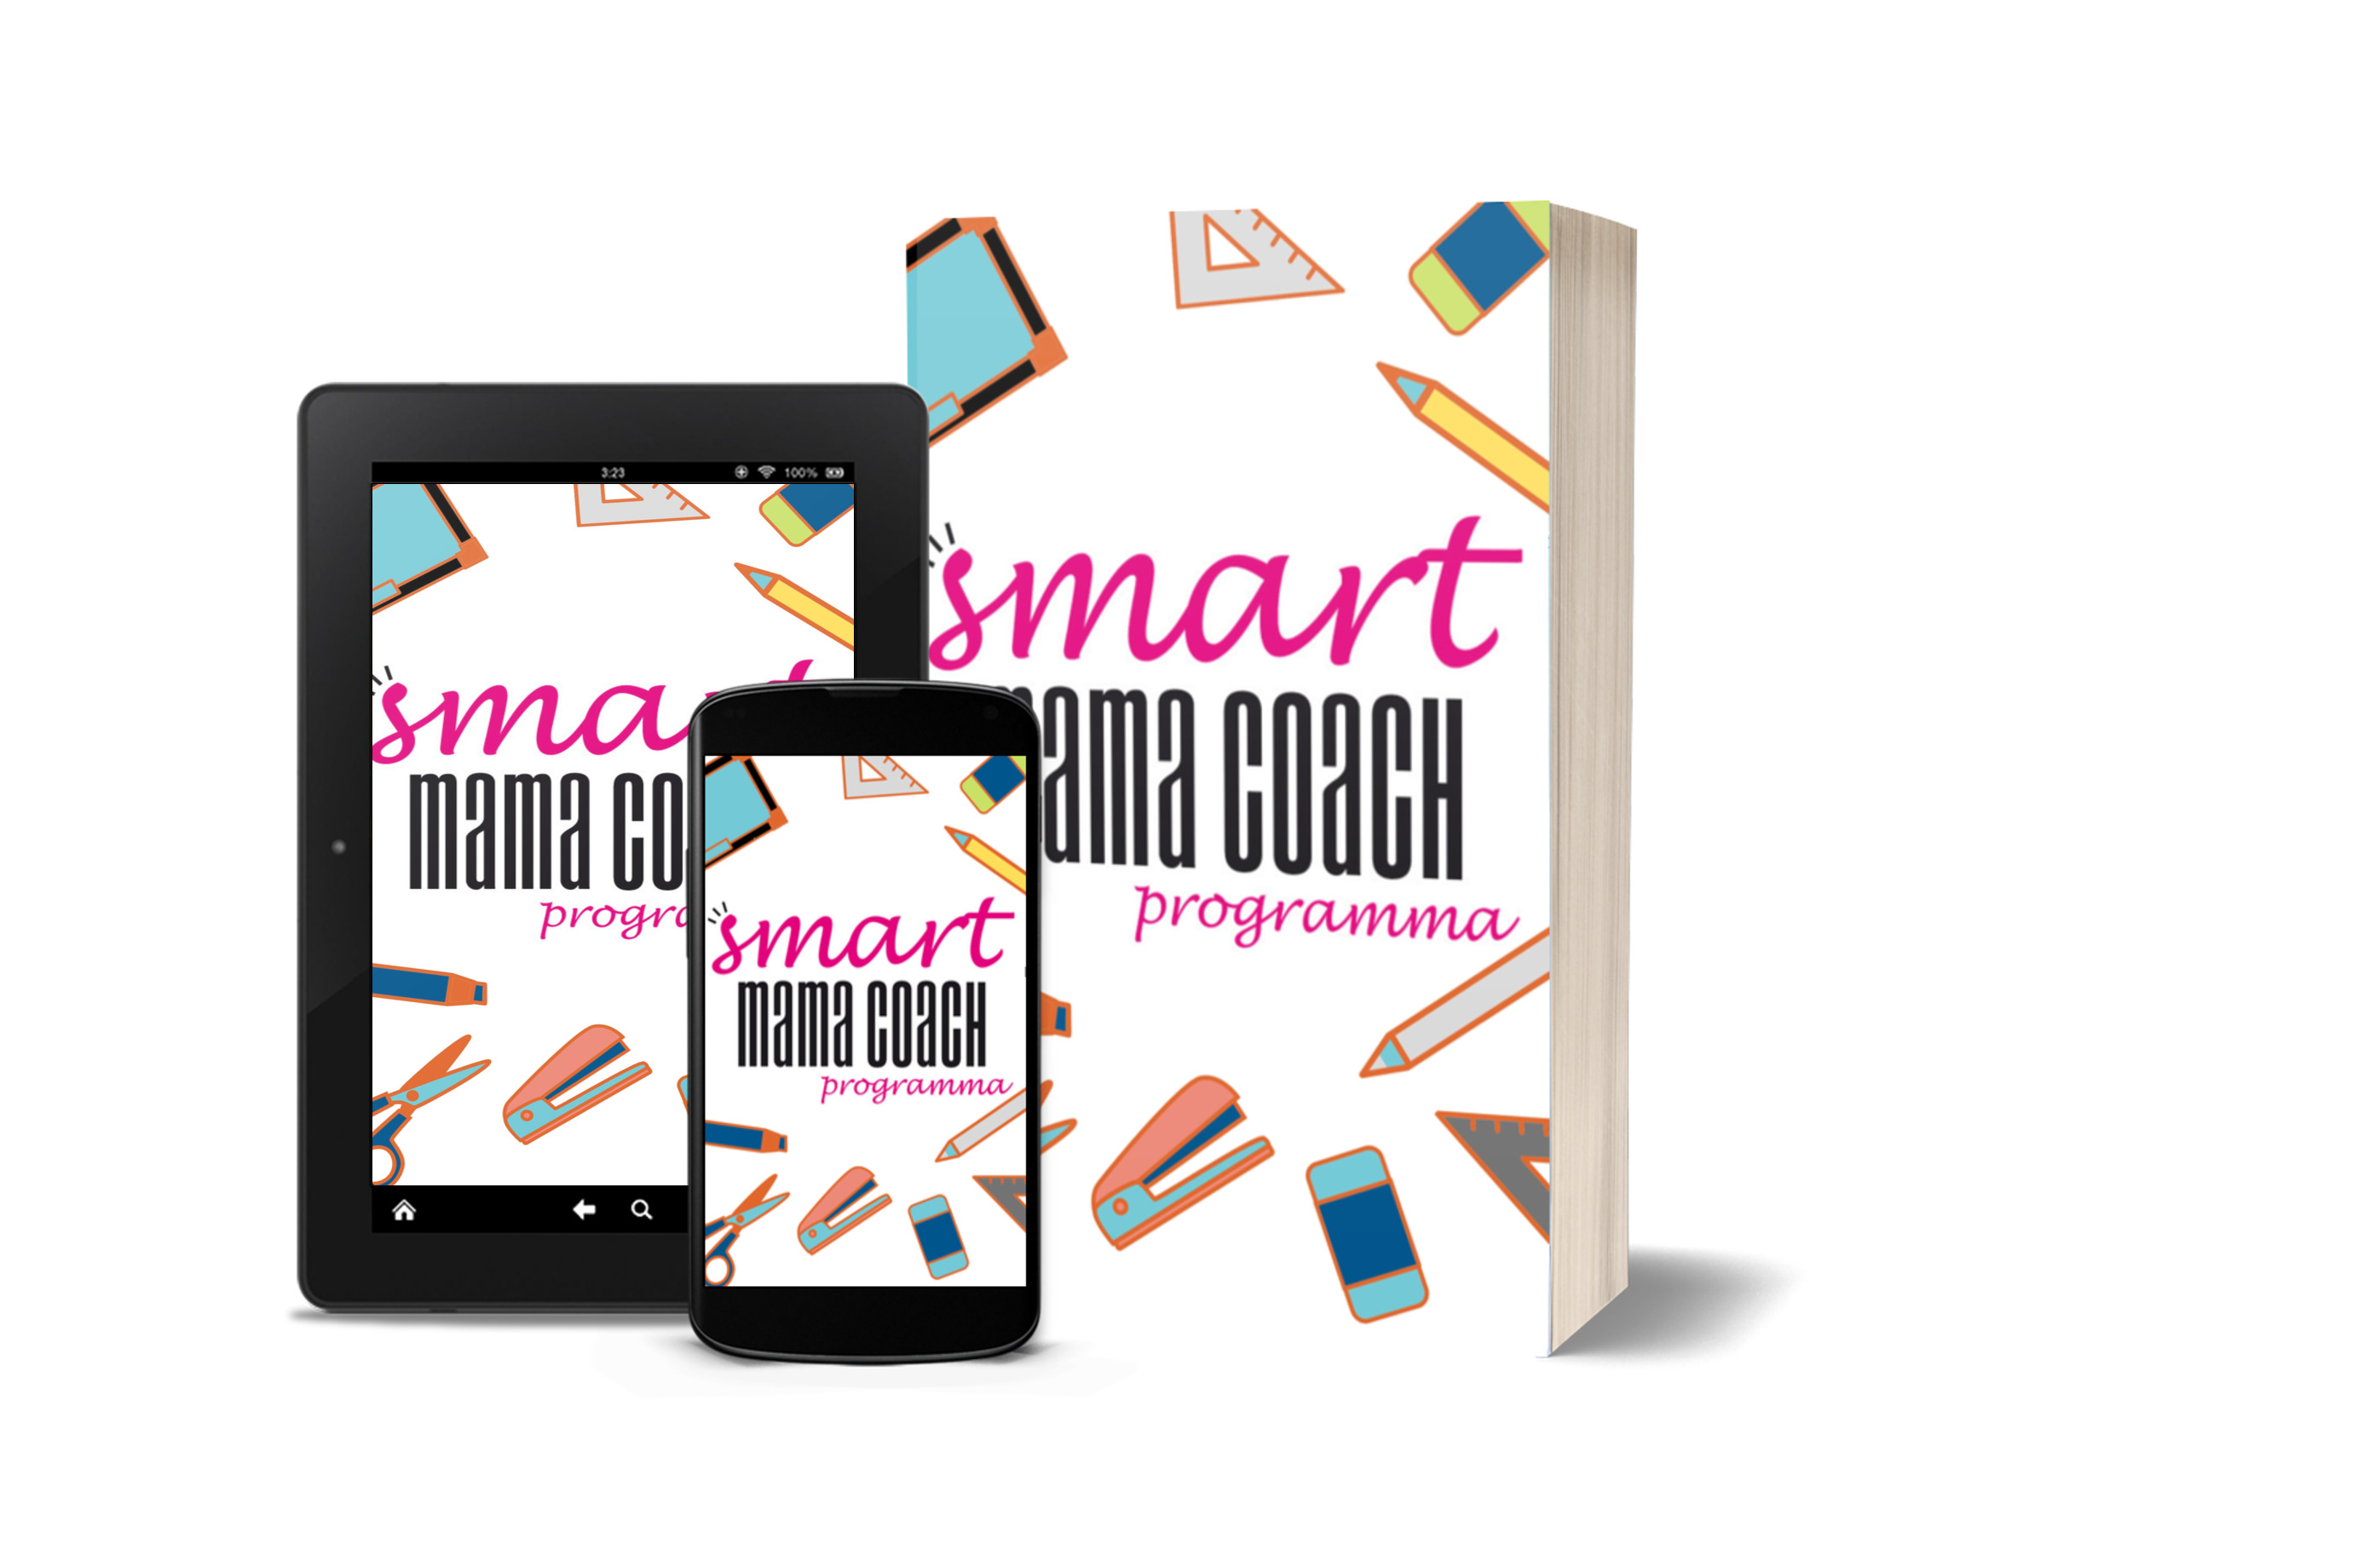 smc programma phone tablet en boek